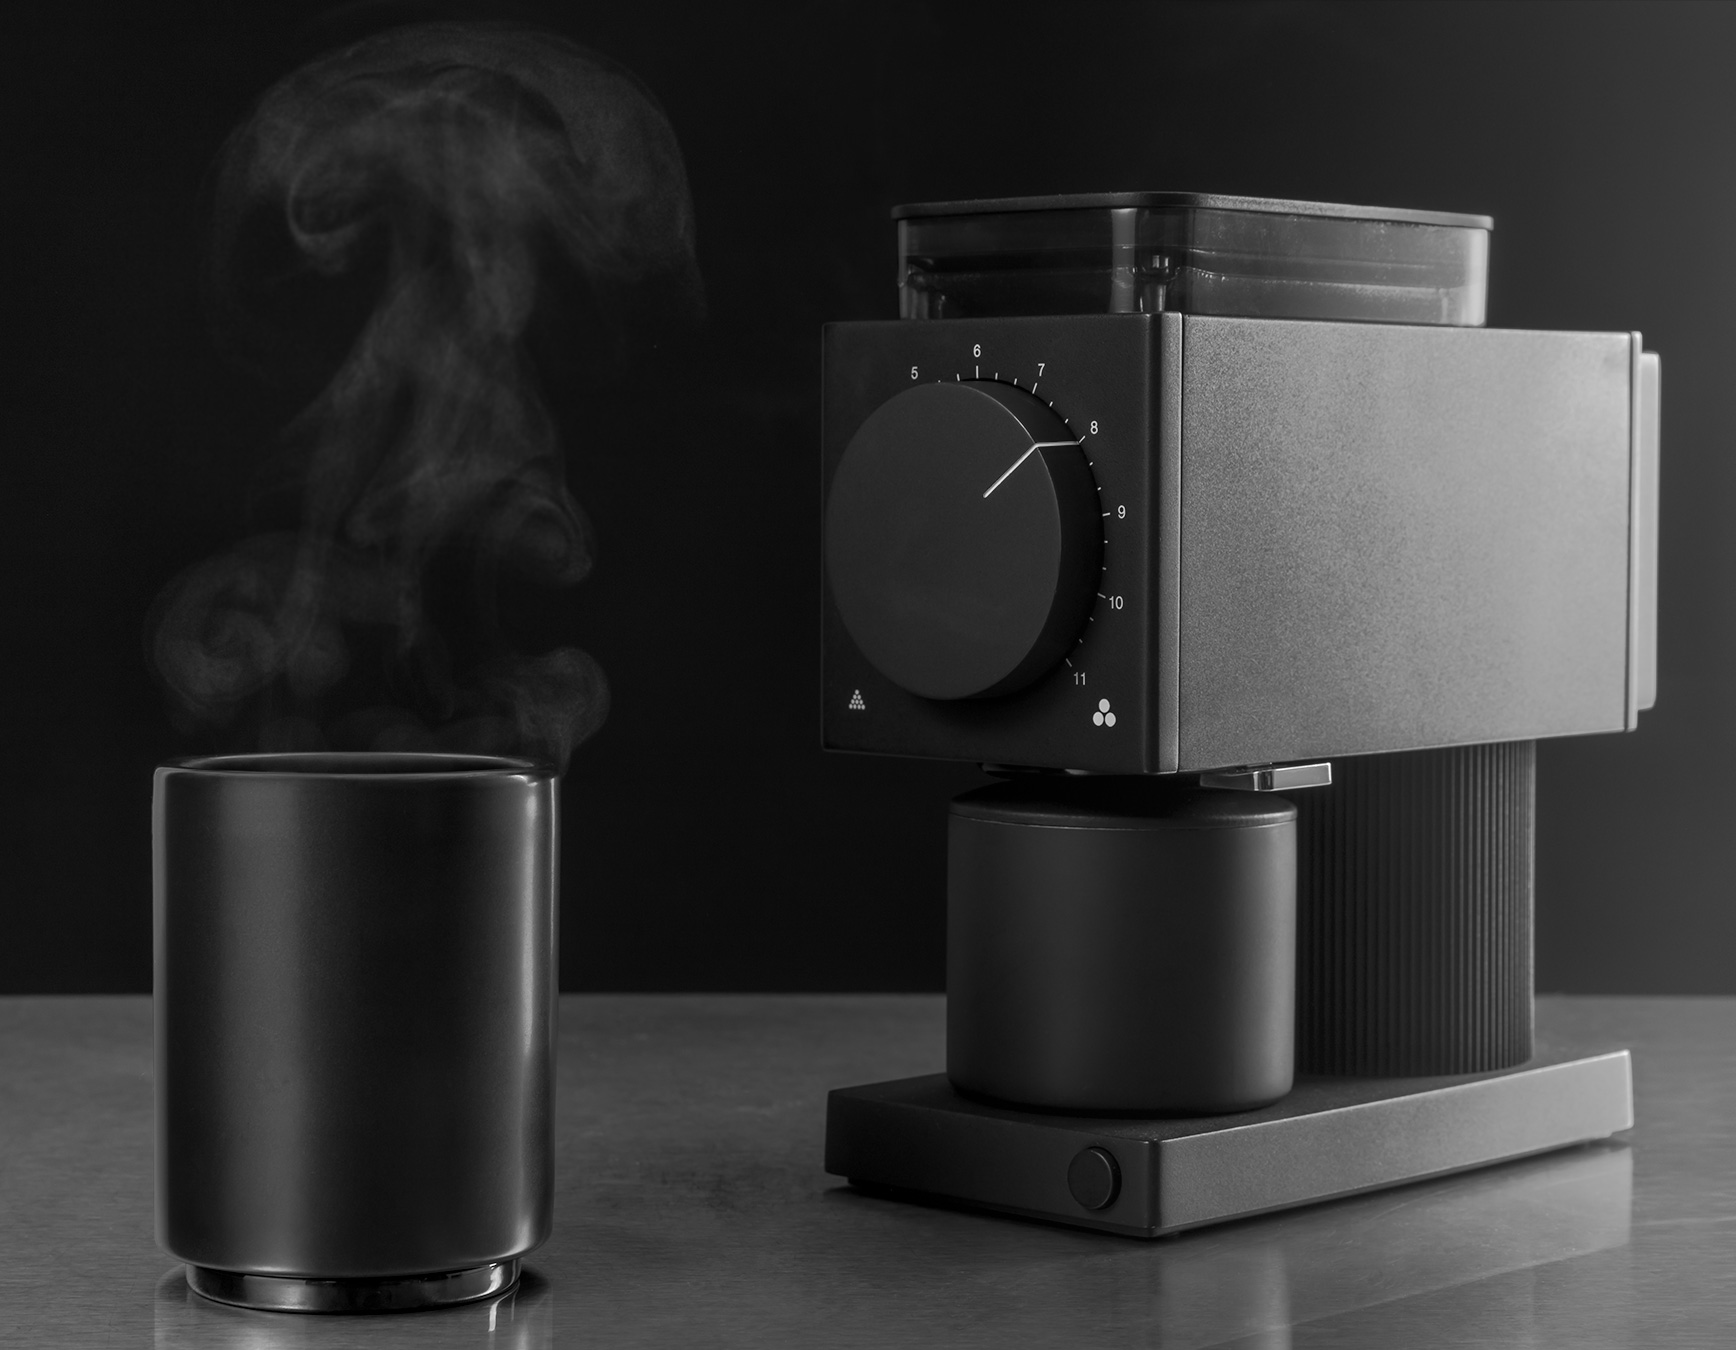 This Countertop Coffee Grinder Won't Wake the Whole House at werd.com